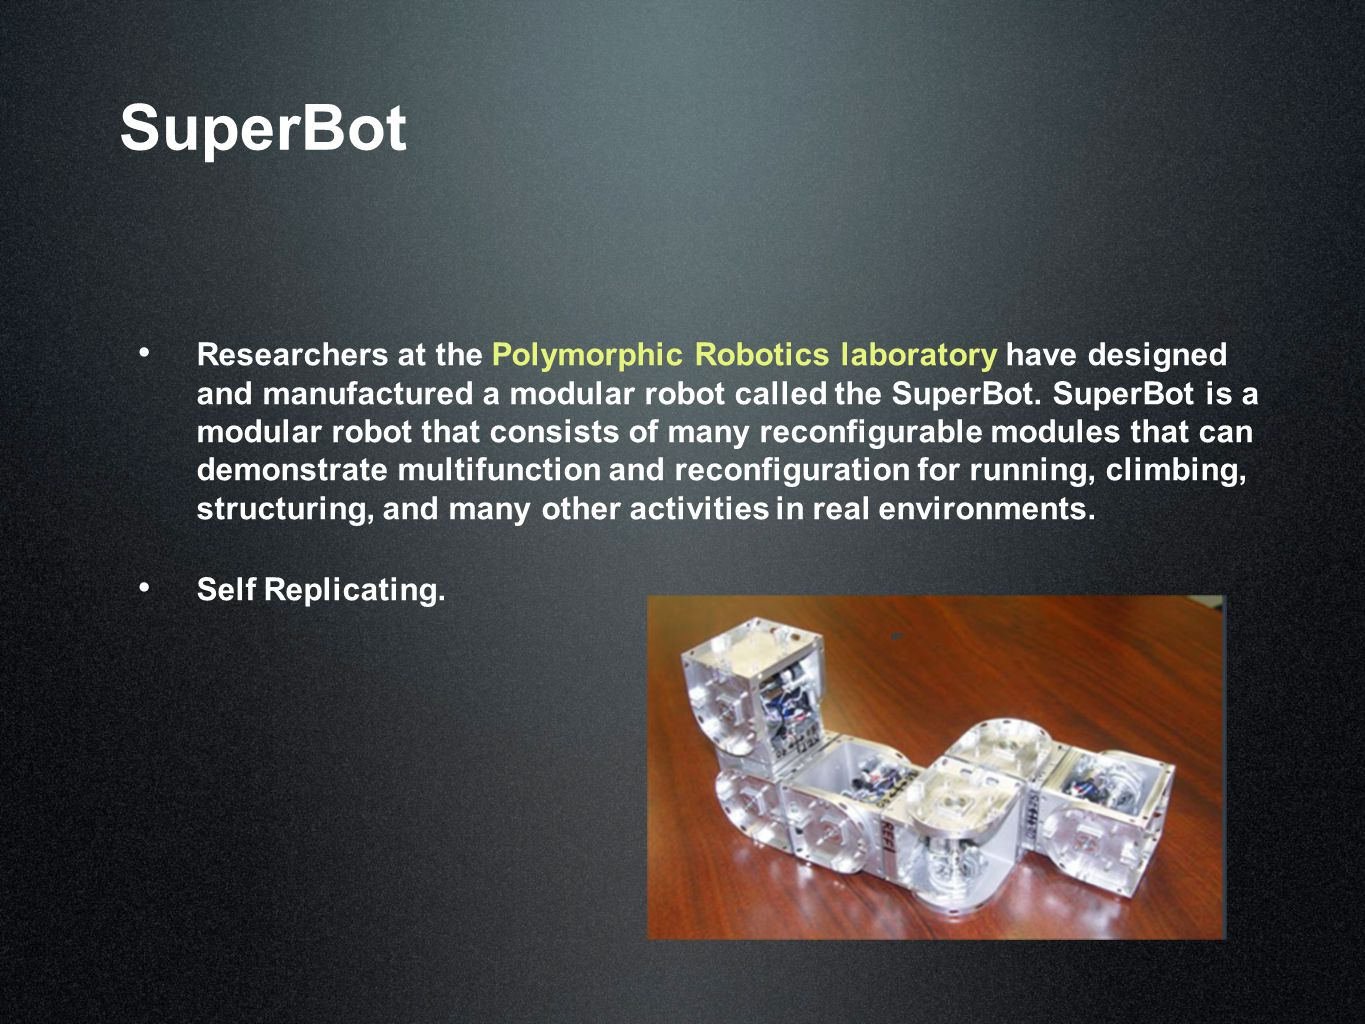 SuperBot Researchers at the Polymorphic Robotics laboratory have designed and manufactured a modular robot called the SuperBot.